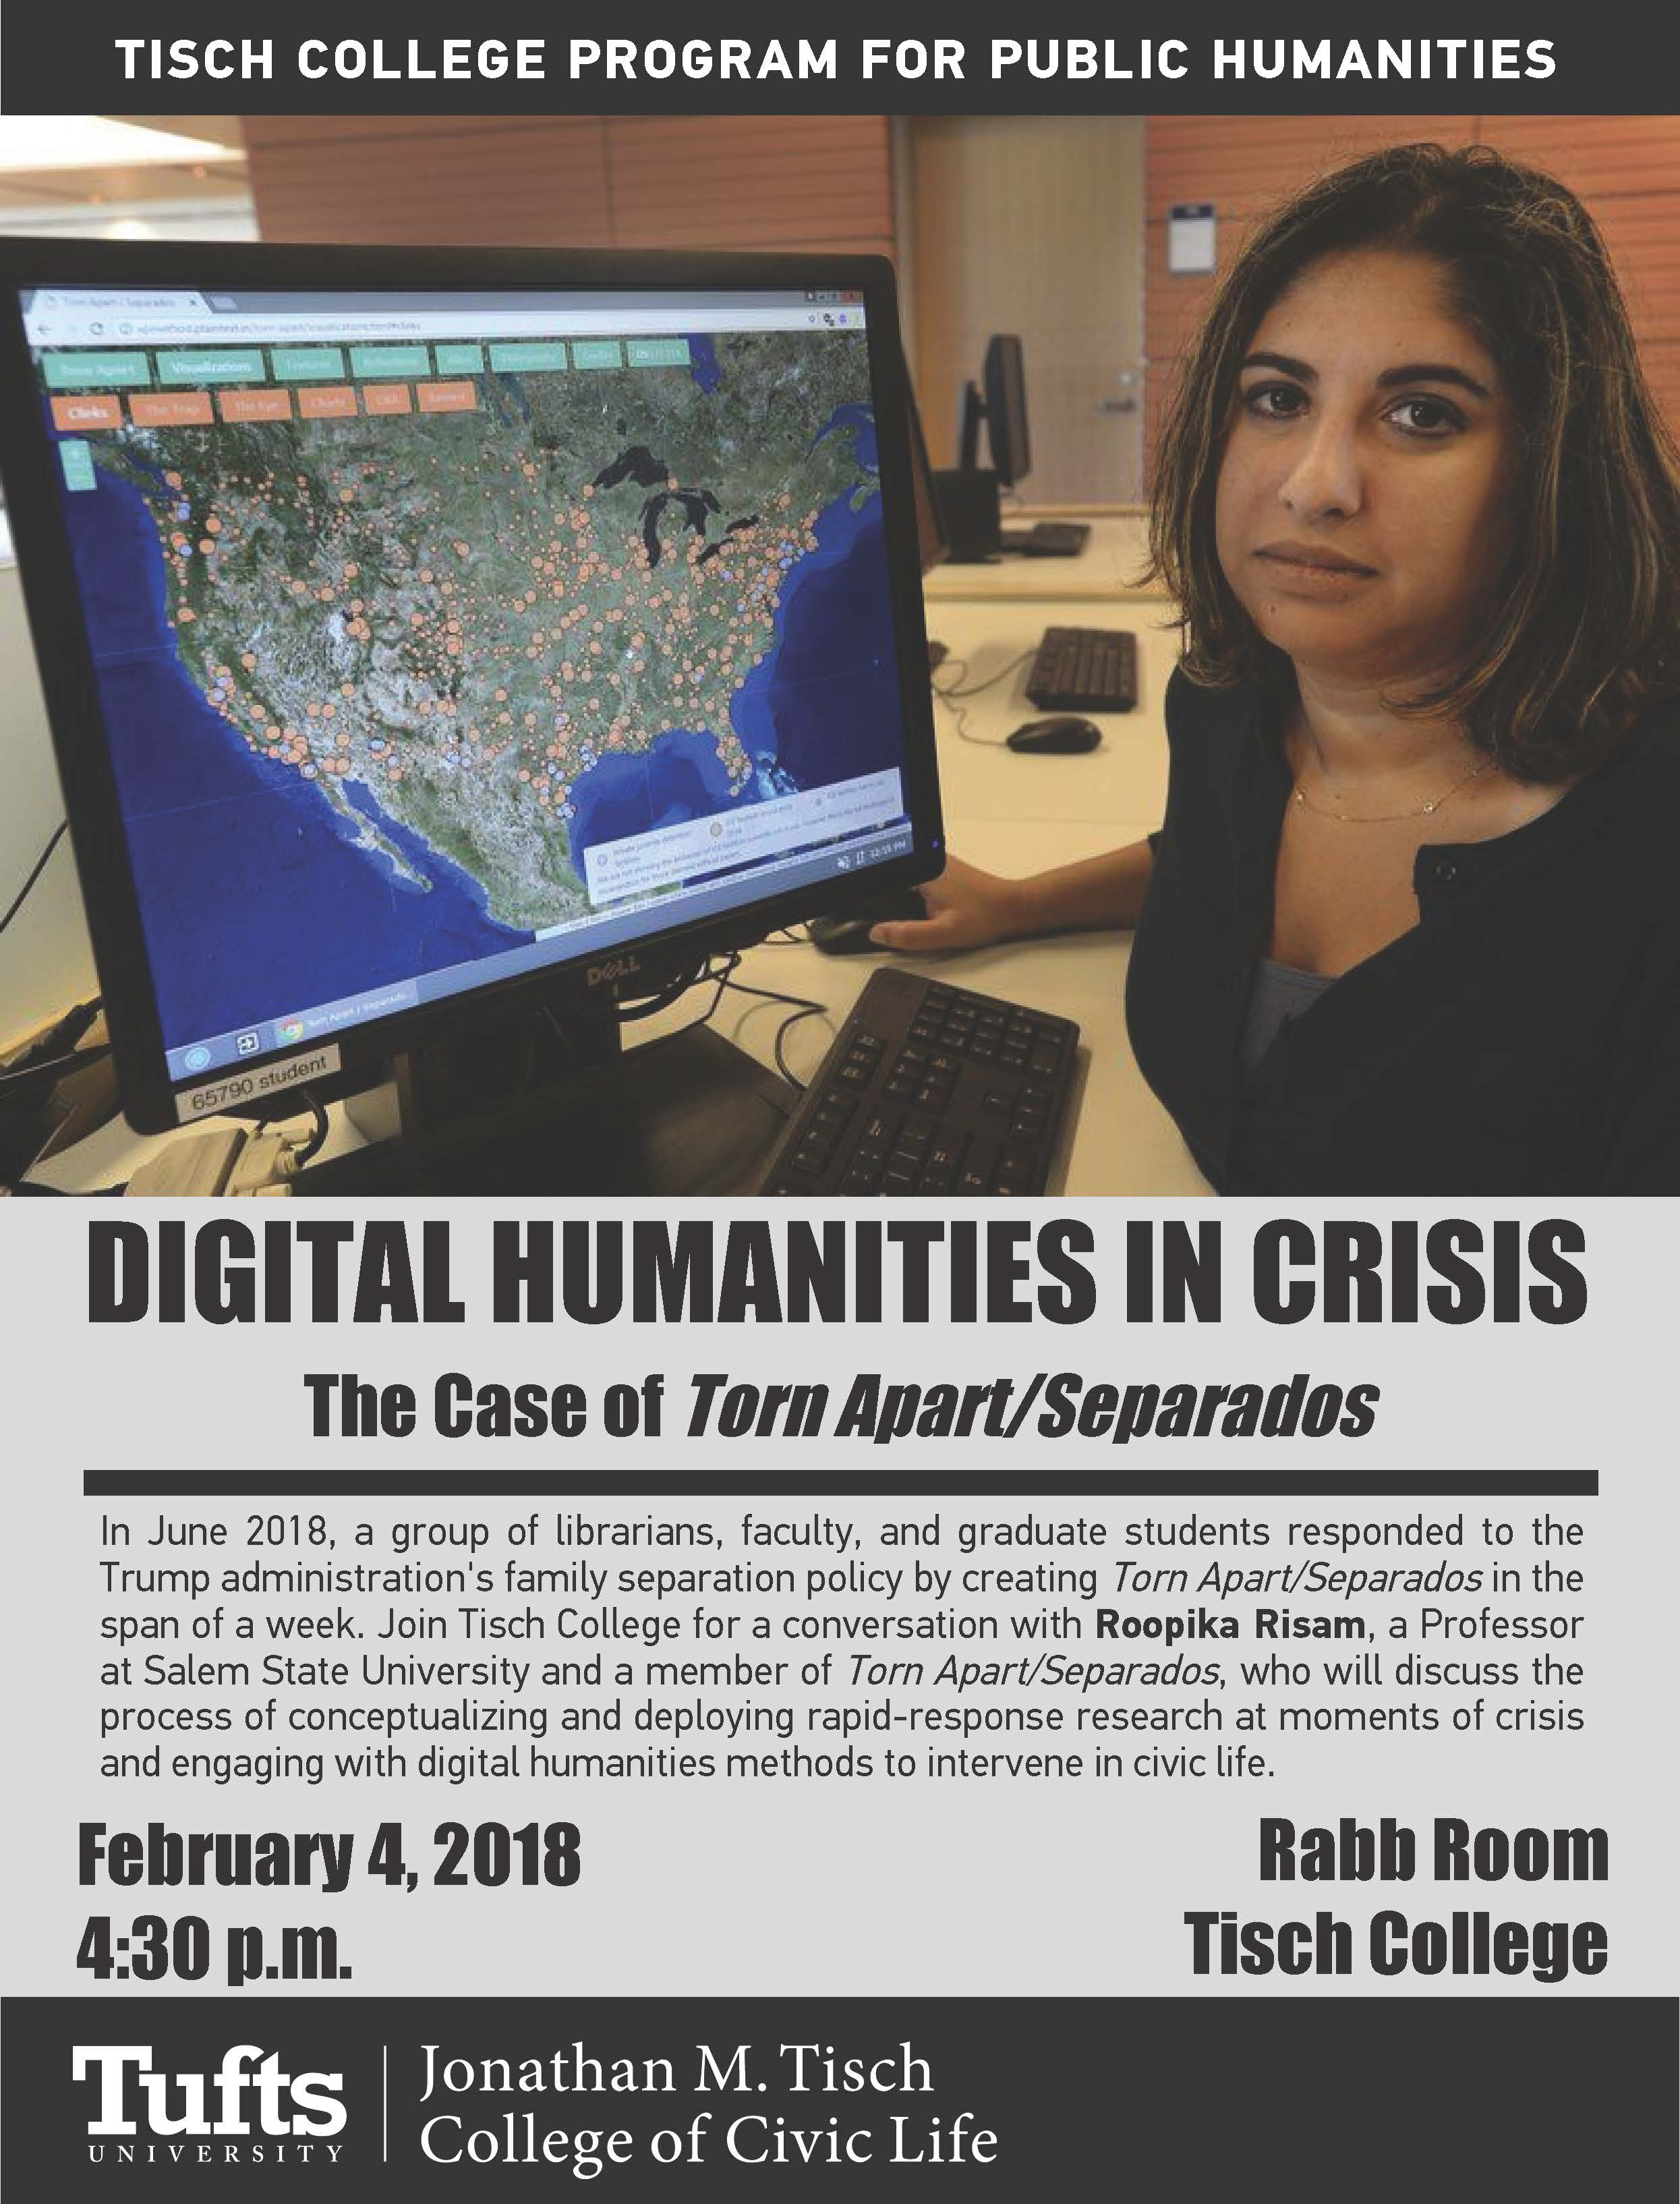 Roopika Risam: Digitial Humanities in Crisis